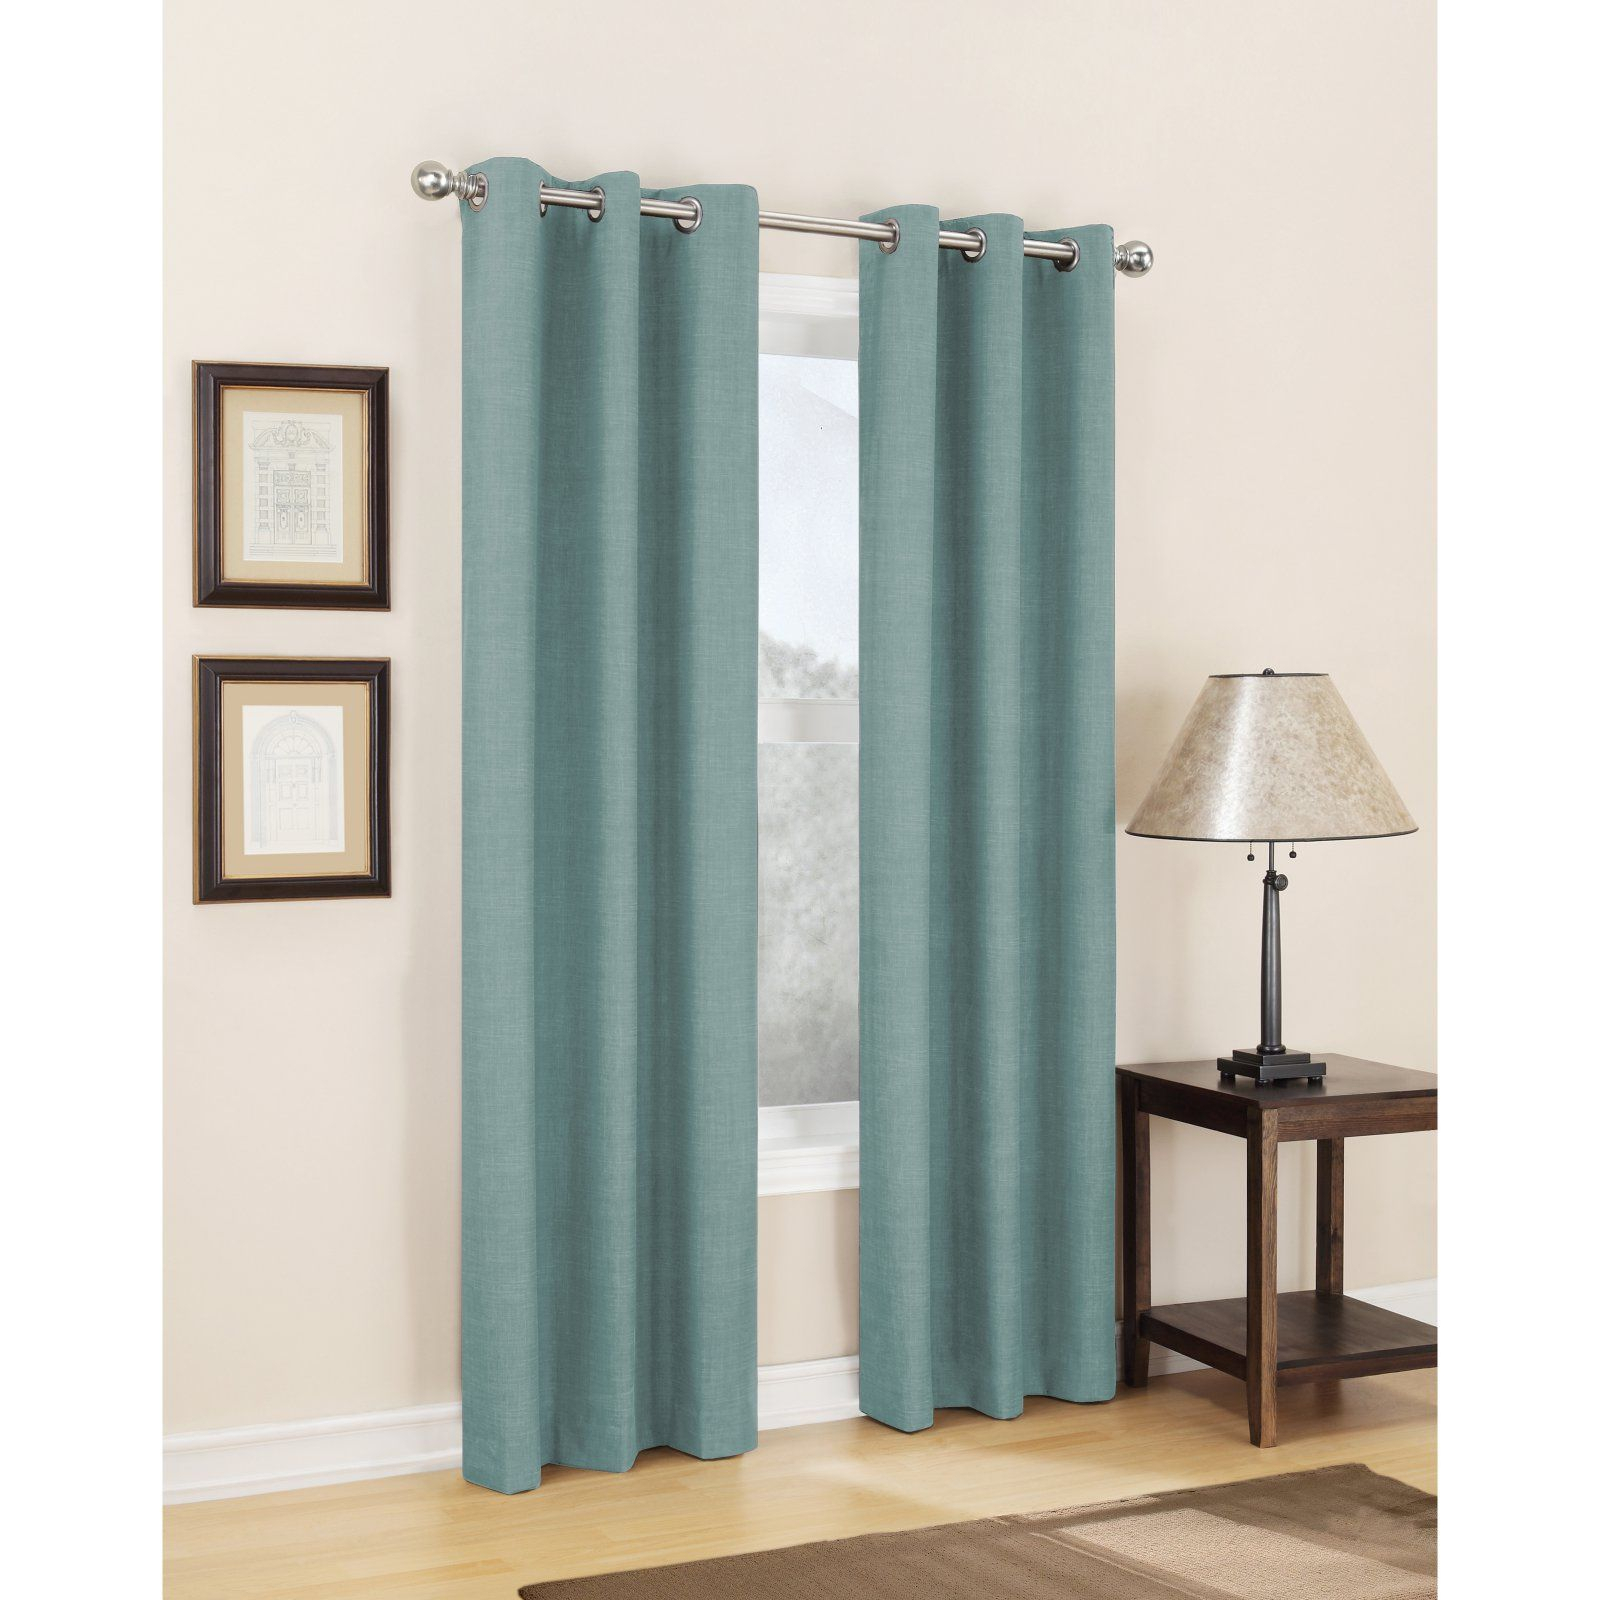 Sun Zero Dean Thermal Lined Grommet Curtain Panel In 2019 Regarding Lined Grommet Curtain Panels (View 19 of 20)